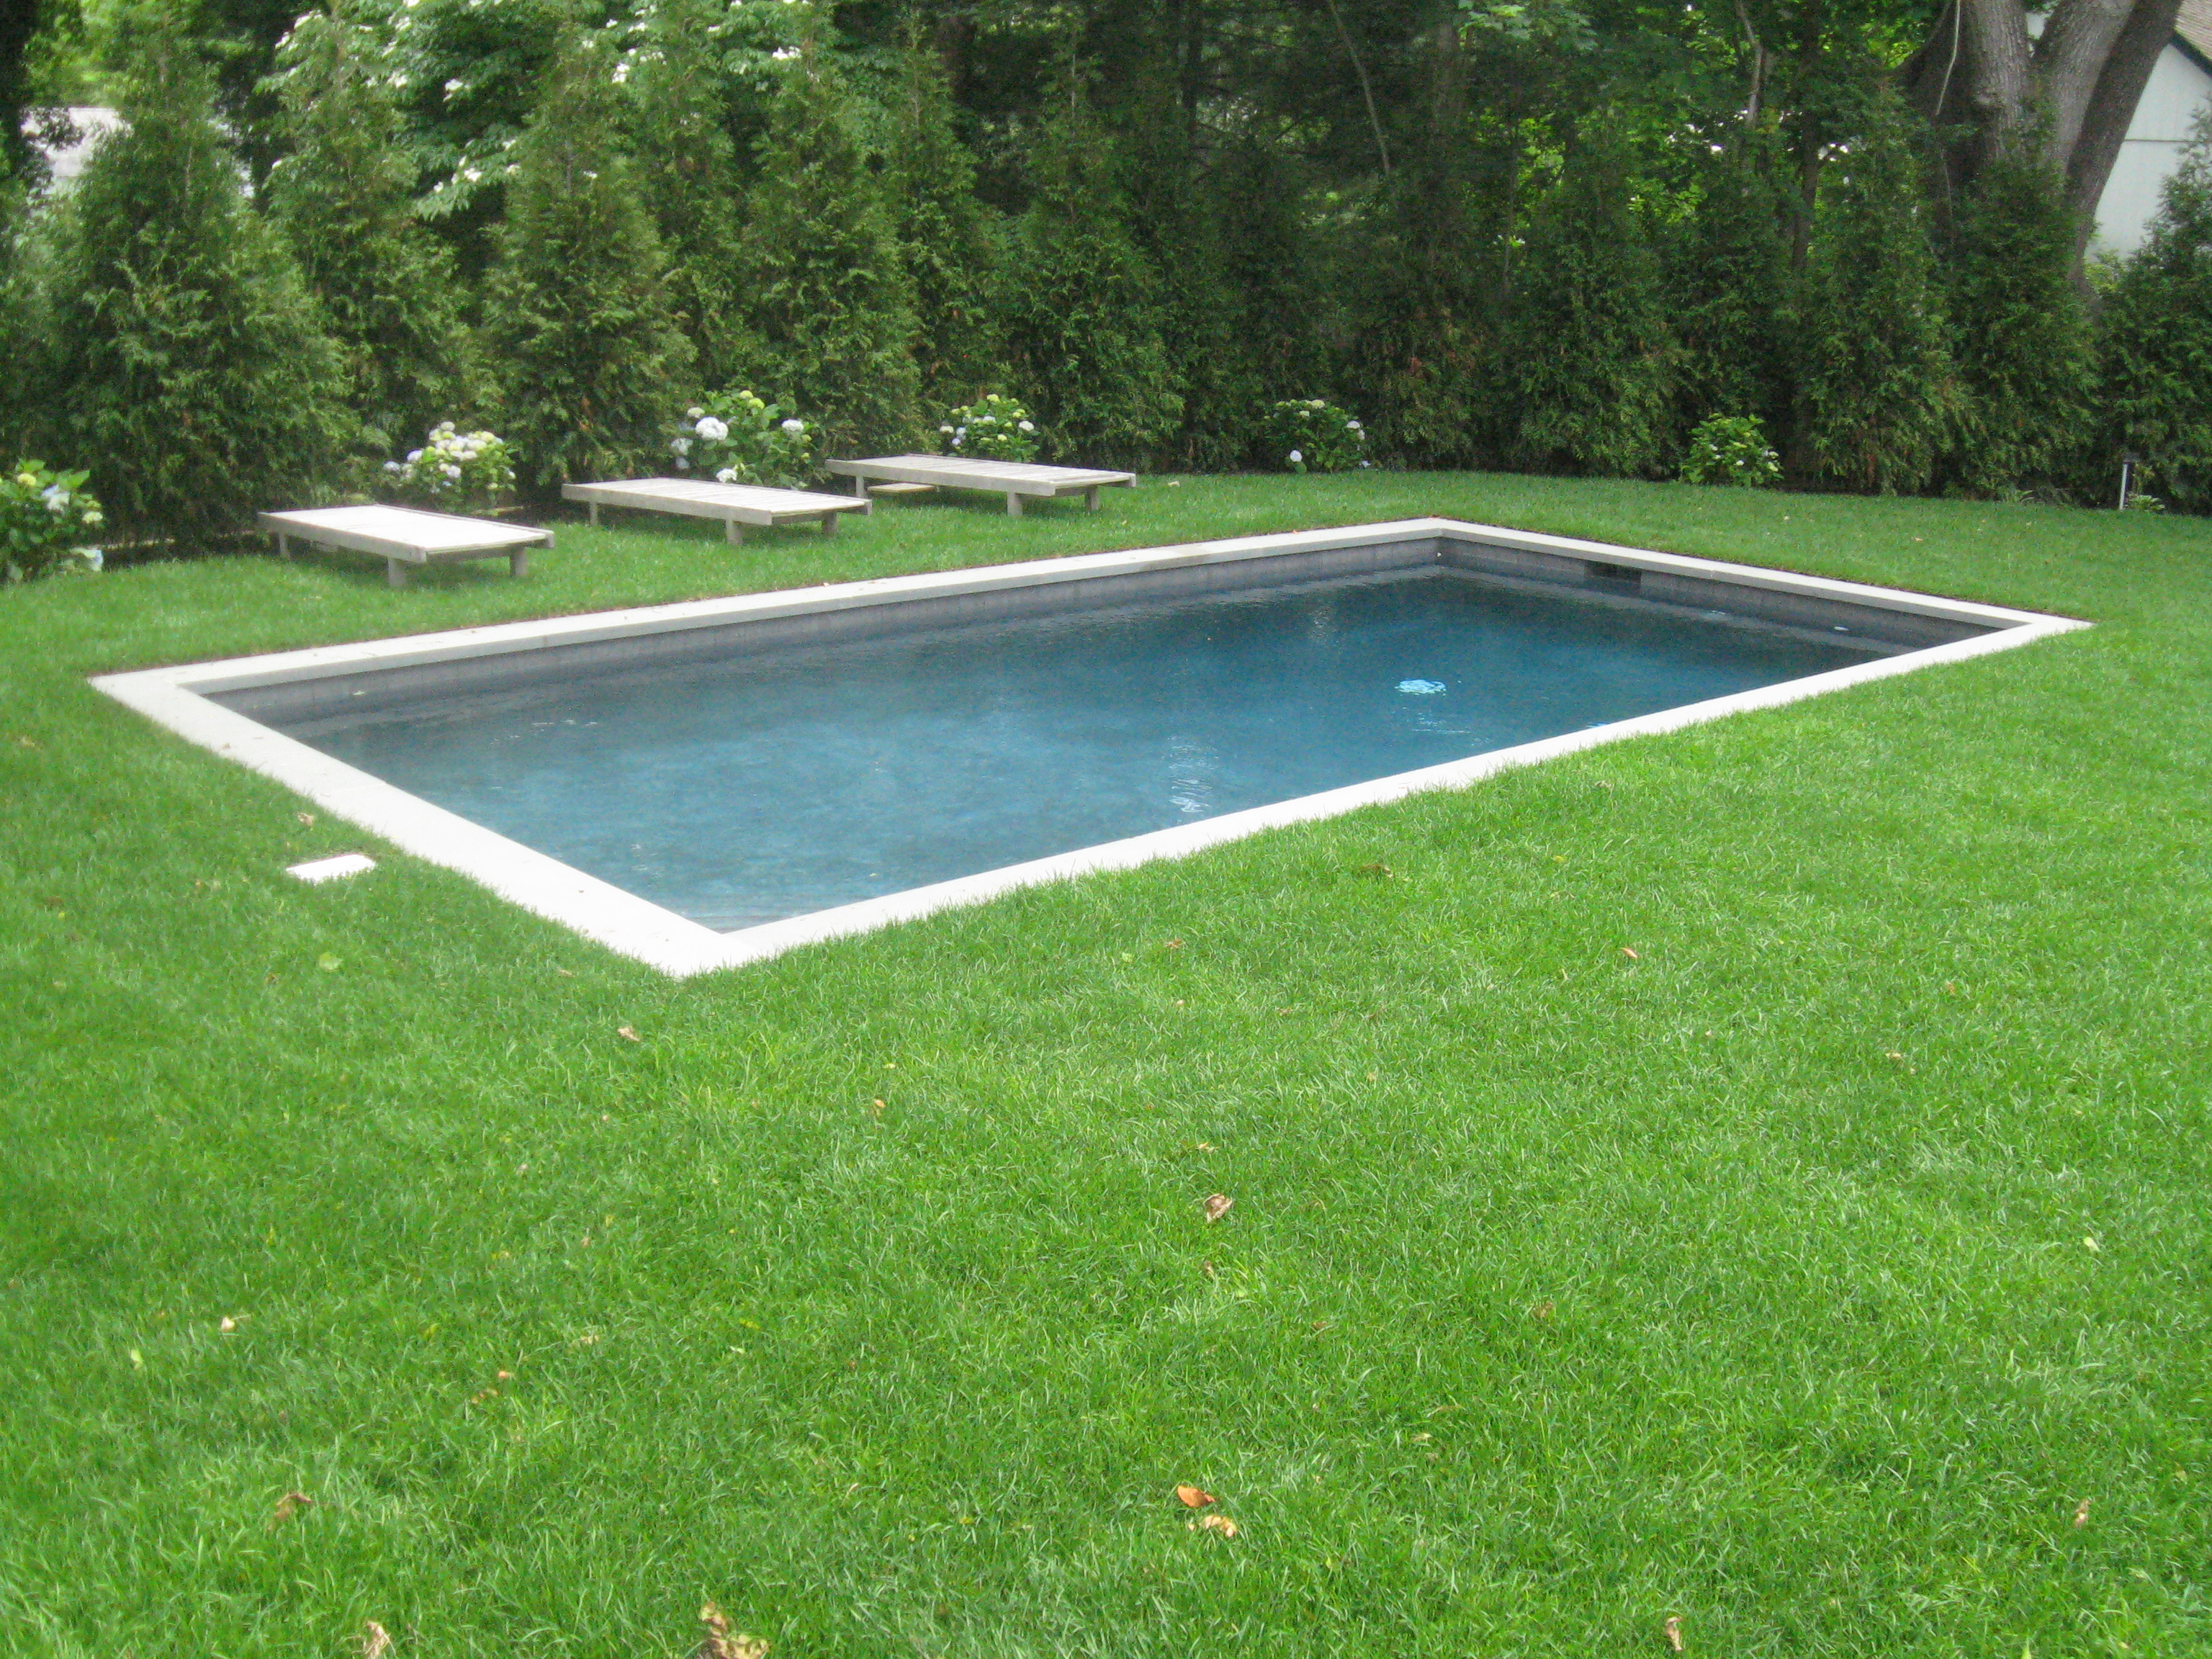 Pool Design Ideas  Small Inground Pools  Kazdin Pools & Spas